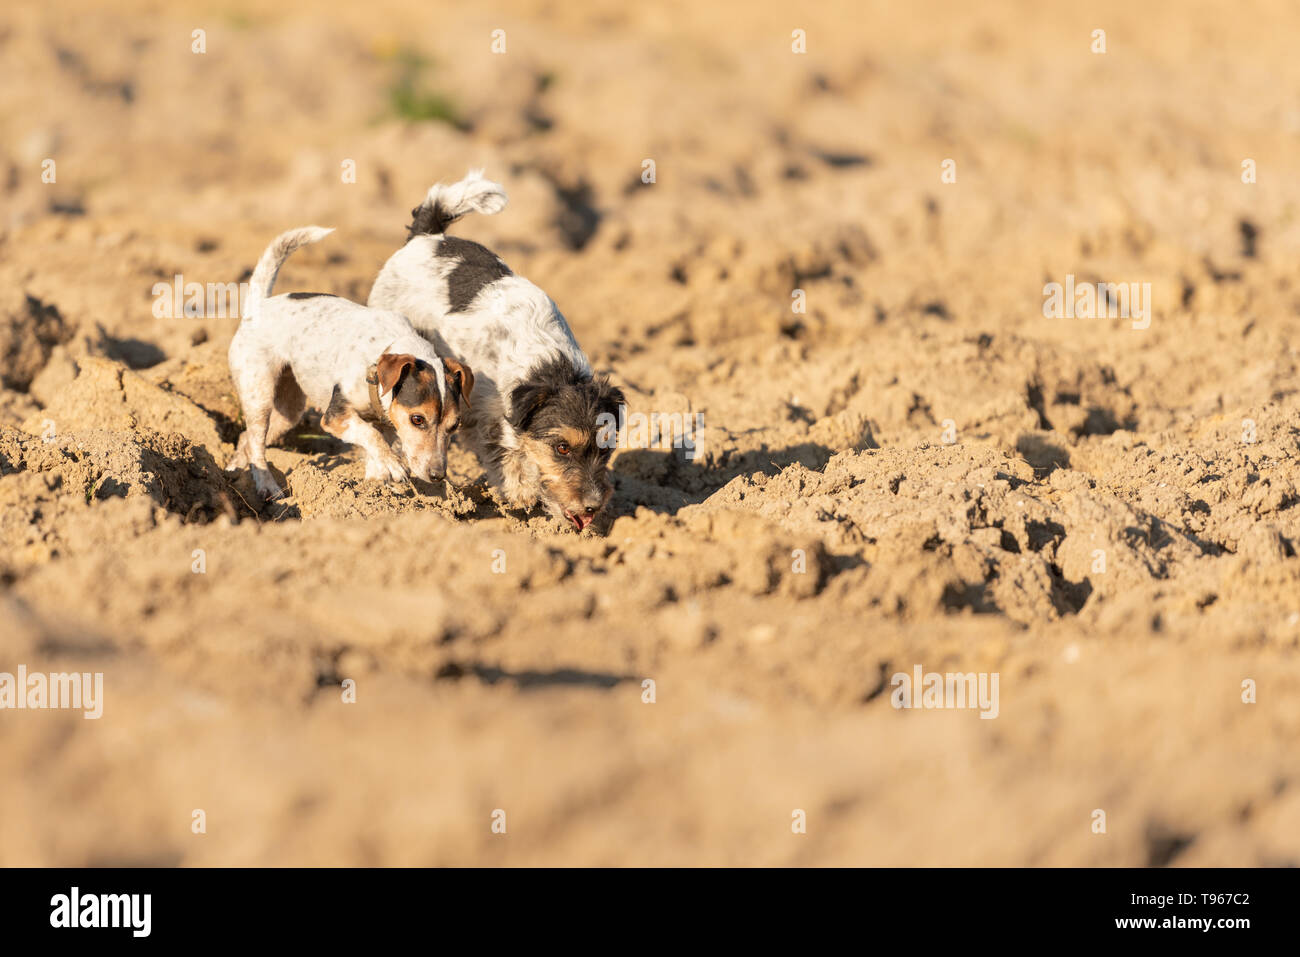 Cute 2 Jack Rusell Terrier dog are following a trail on a  field. Dogs are 4 and 12 years old. - Stock Image